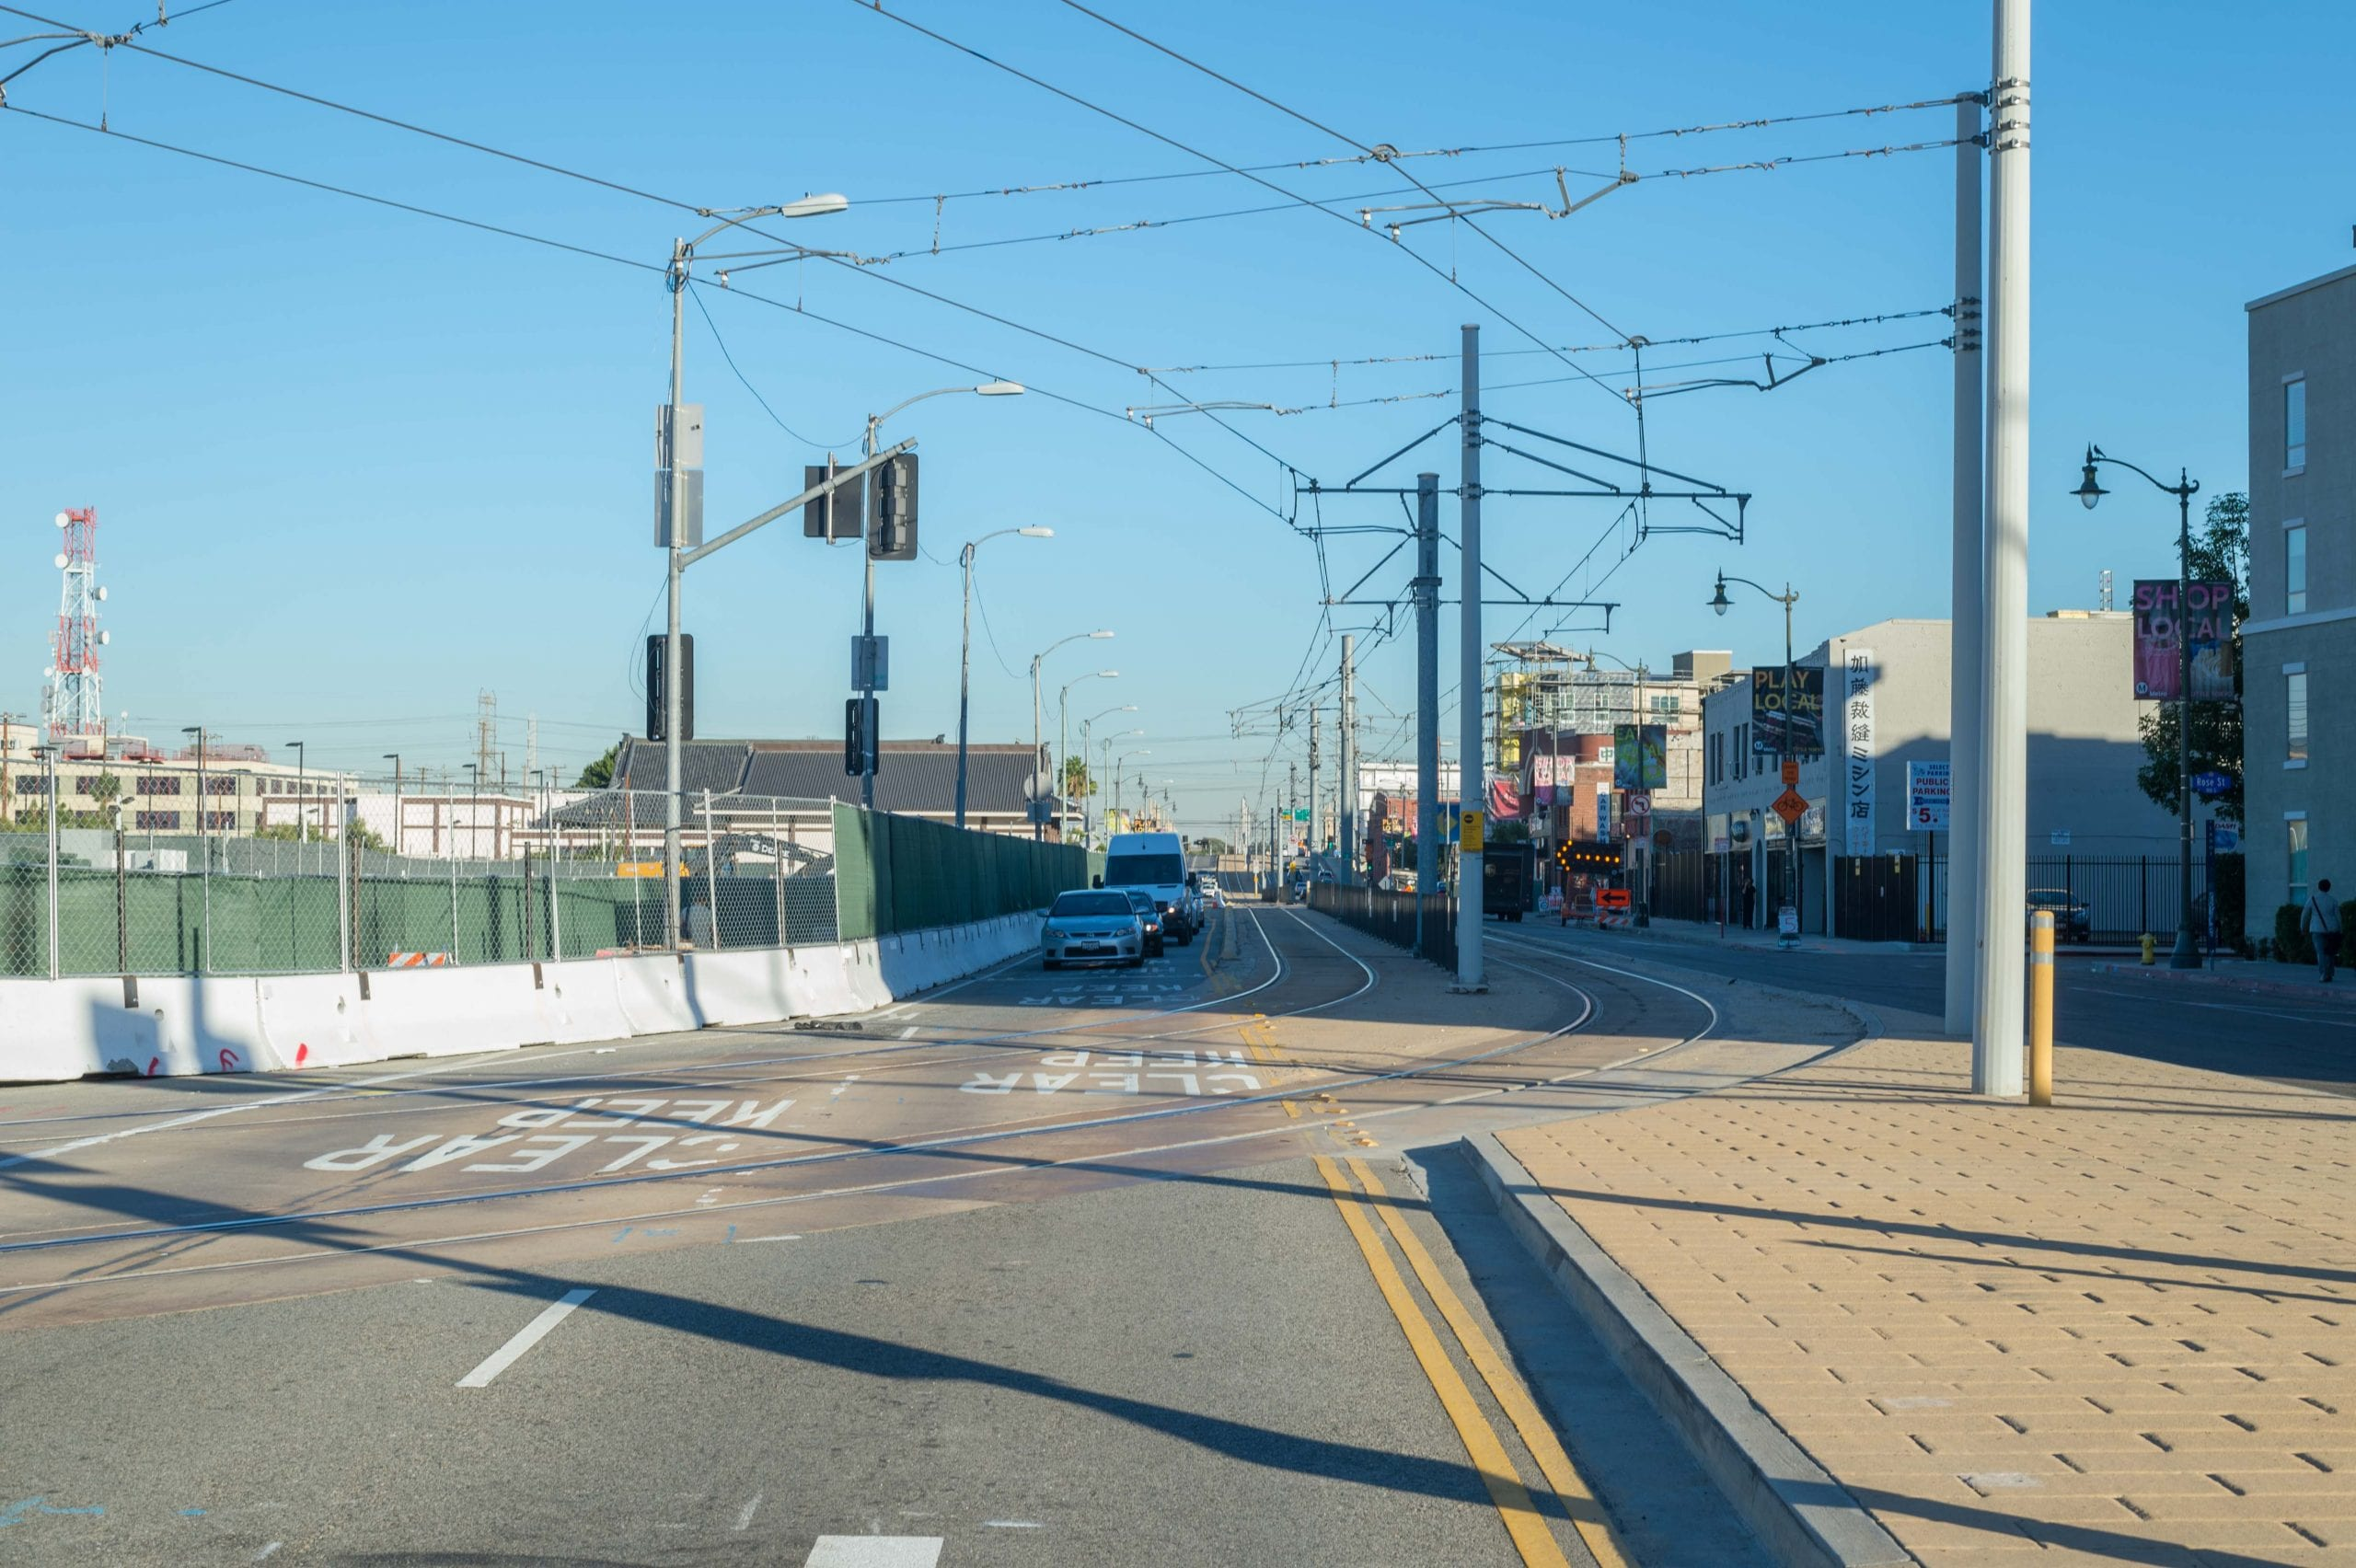 The closures are being done to move the existing tracks in the middle of 1st Street to the north side of the street (left in photo above) in order to build a new tunnel entrance in the middle of the street.